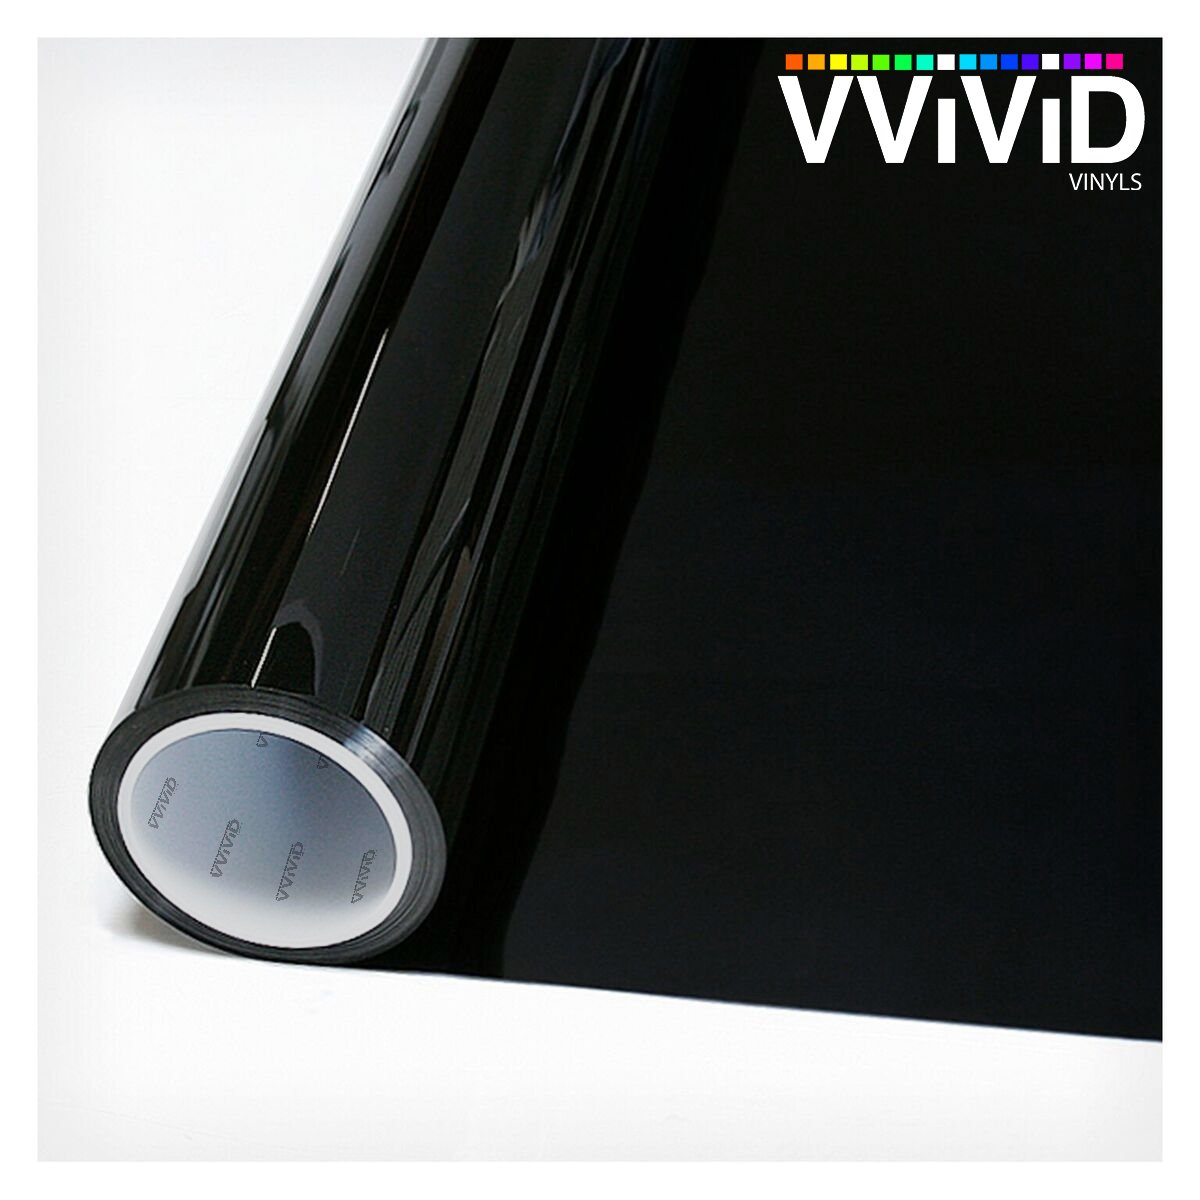 VViViD Matte Blackout Privacy Opaque Window Vinyl Film Decorative Decal for Bathroom, Kitchen, Home, Office DIY Easy to Install Mess-Free Adhesive (60'' x 25ft)